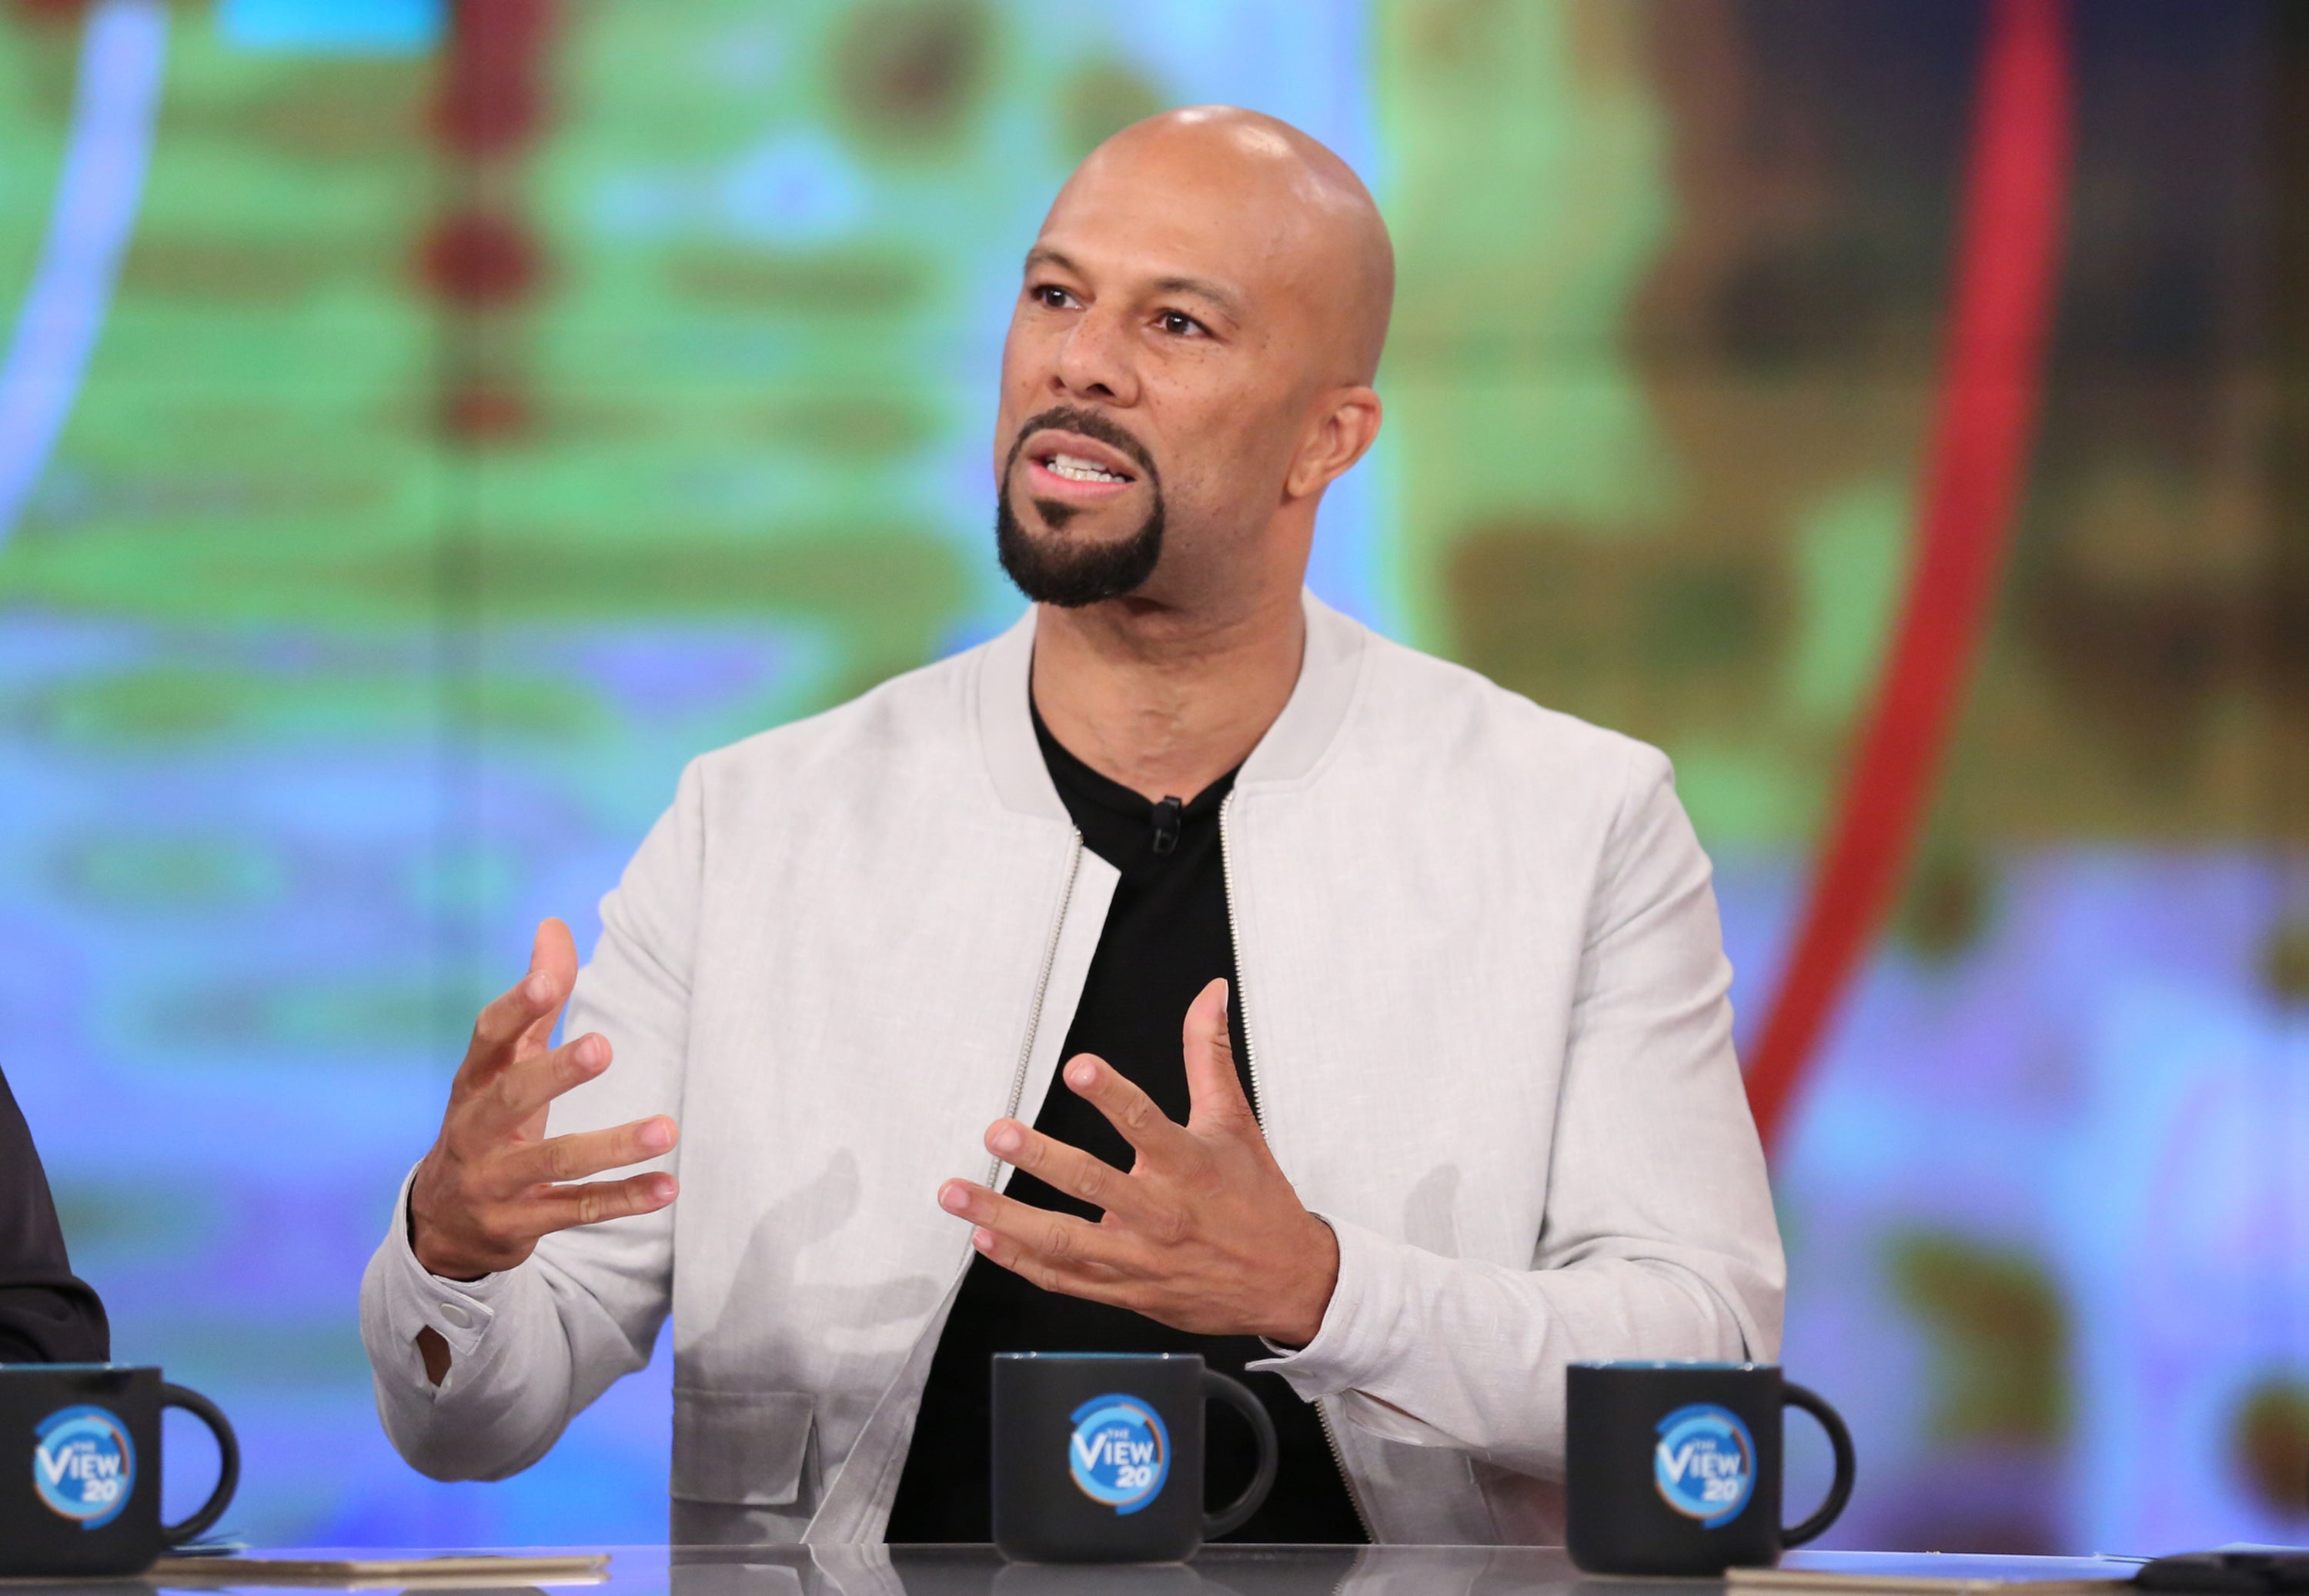 Common Delivers Some Common Sense On Election 2016 – 'Donald Trump Is Not Prepared To Be A President'